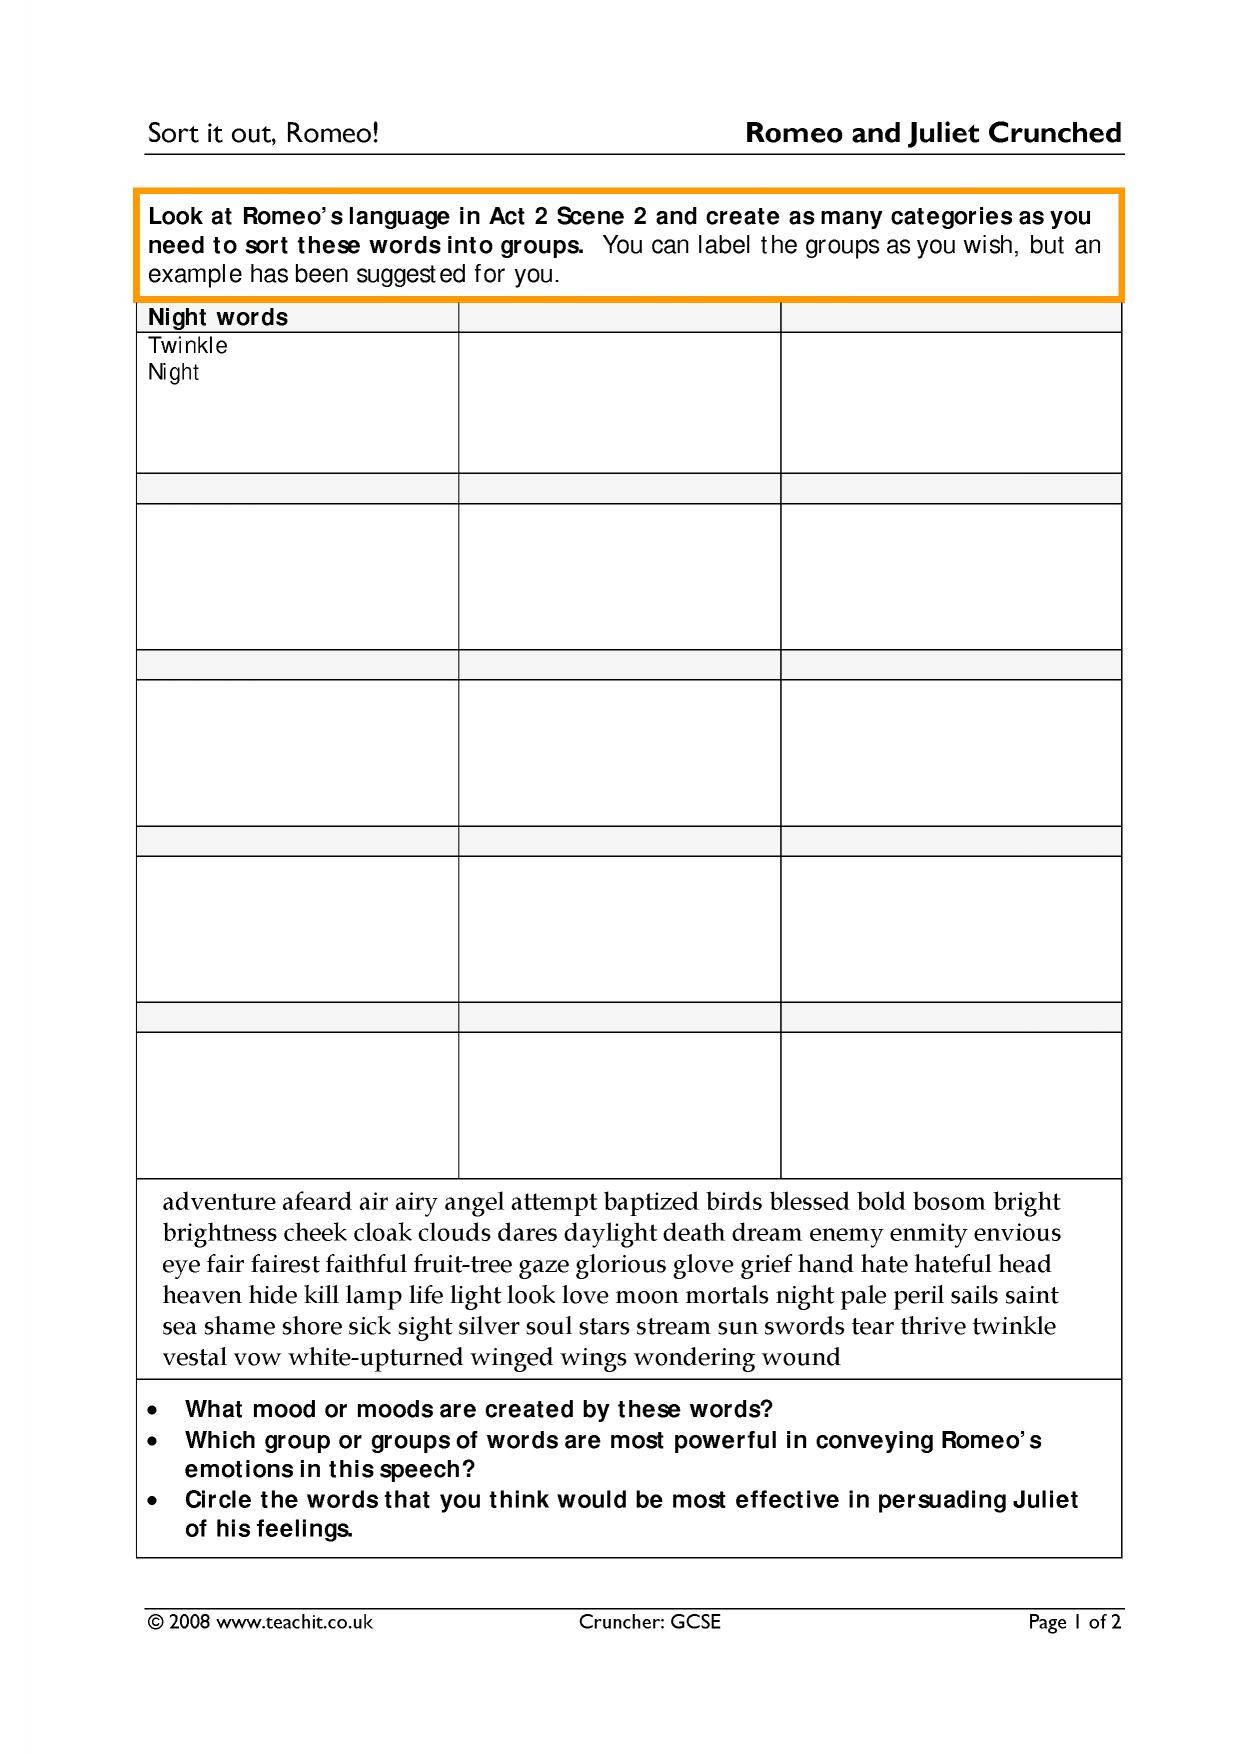 romeo juliet prologue search results Teachit English – Romeo and Juliet Prologue Worksheet